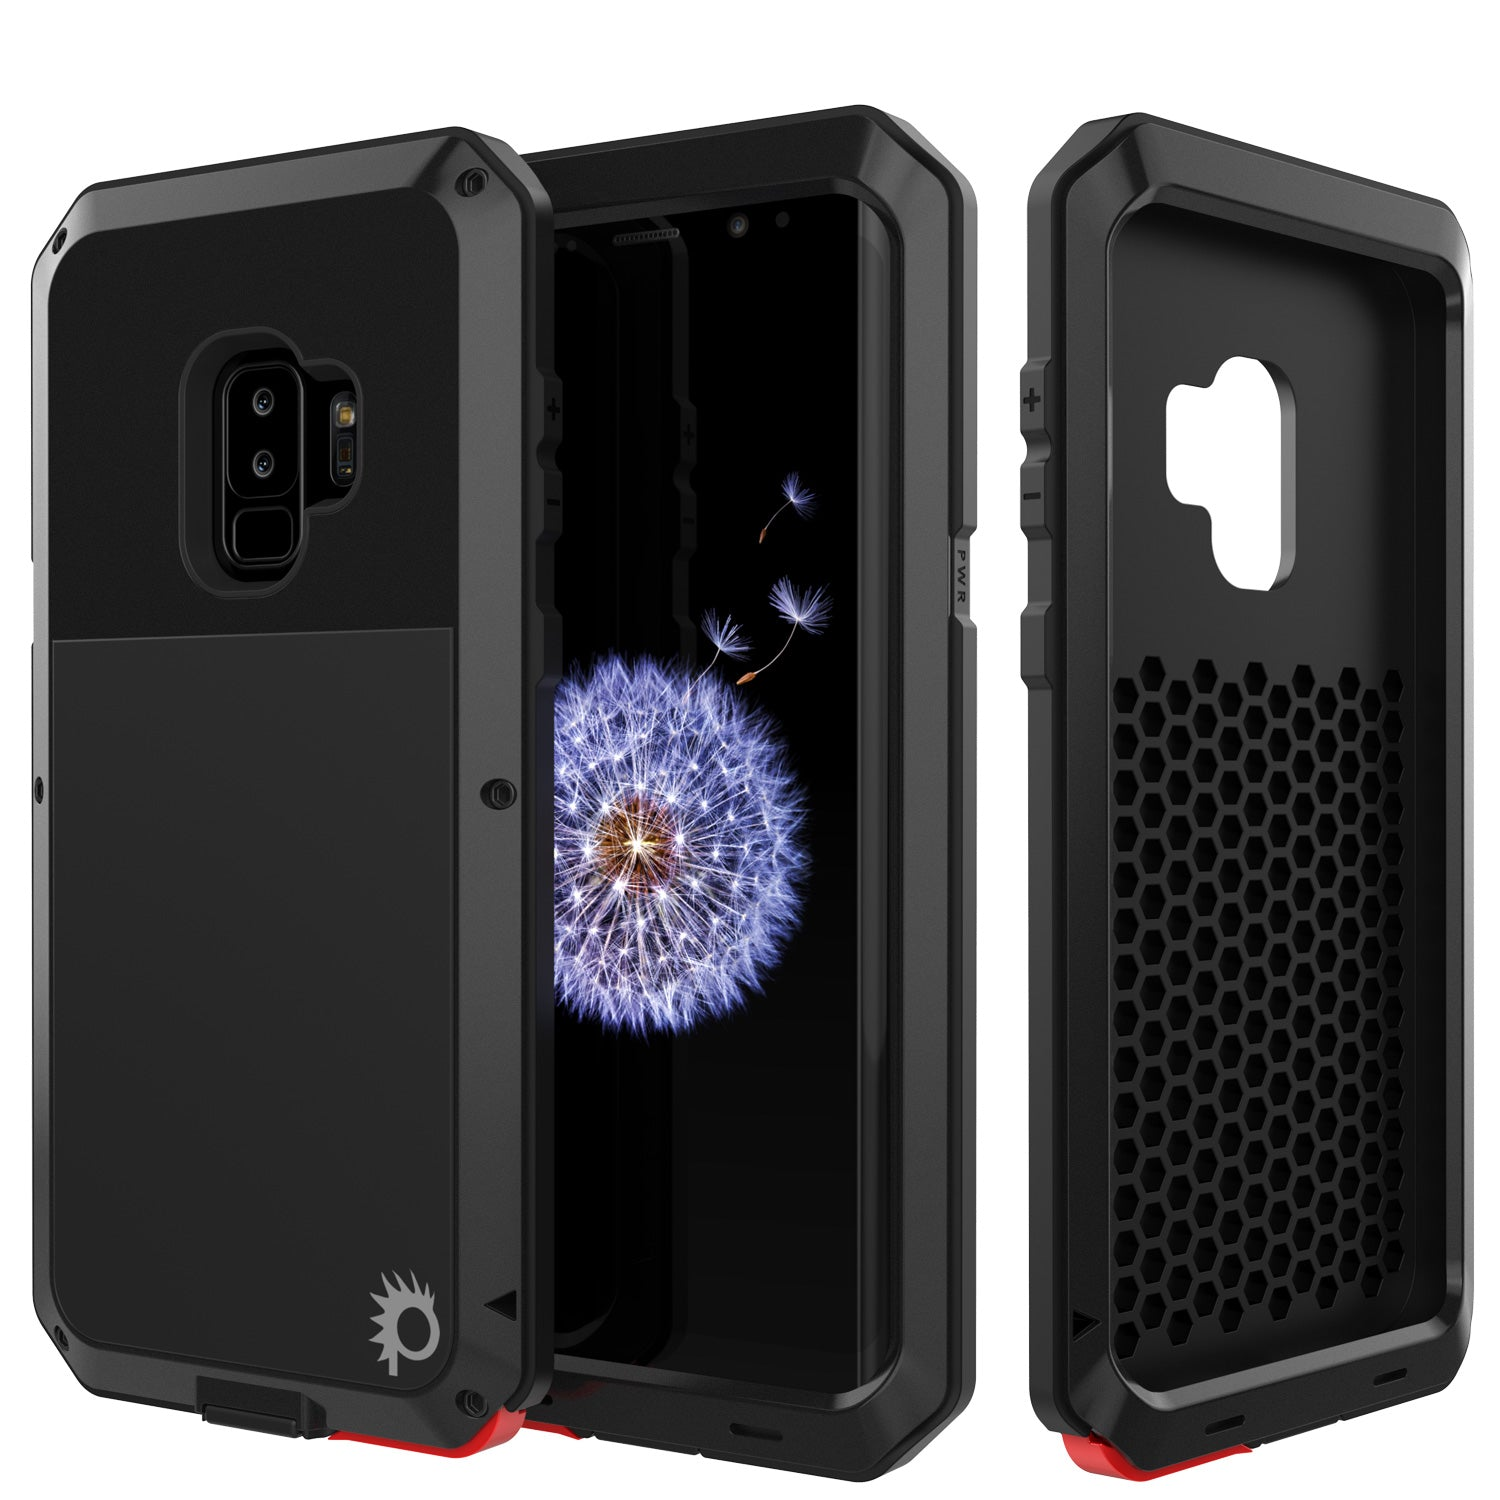 promo code 27b6e fdc29 Galaxy S9 Plus Metal Case, Heavy Duty Military Grade Rugged Armor Cover  [Black]